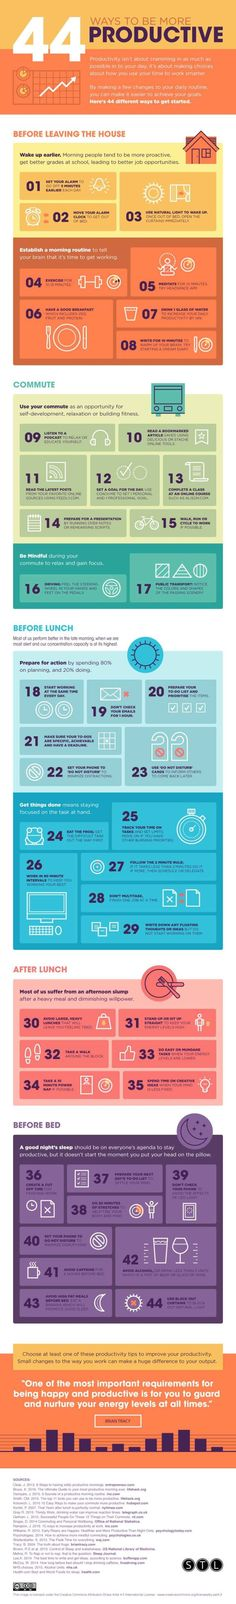 44 Ways To Be More Productive - Productivity Tips